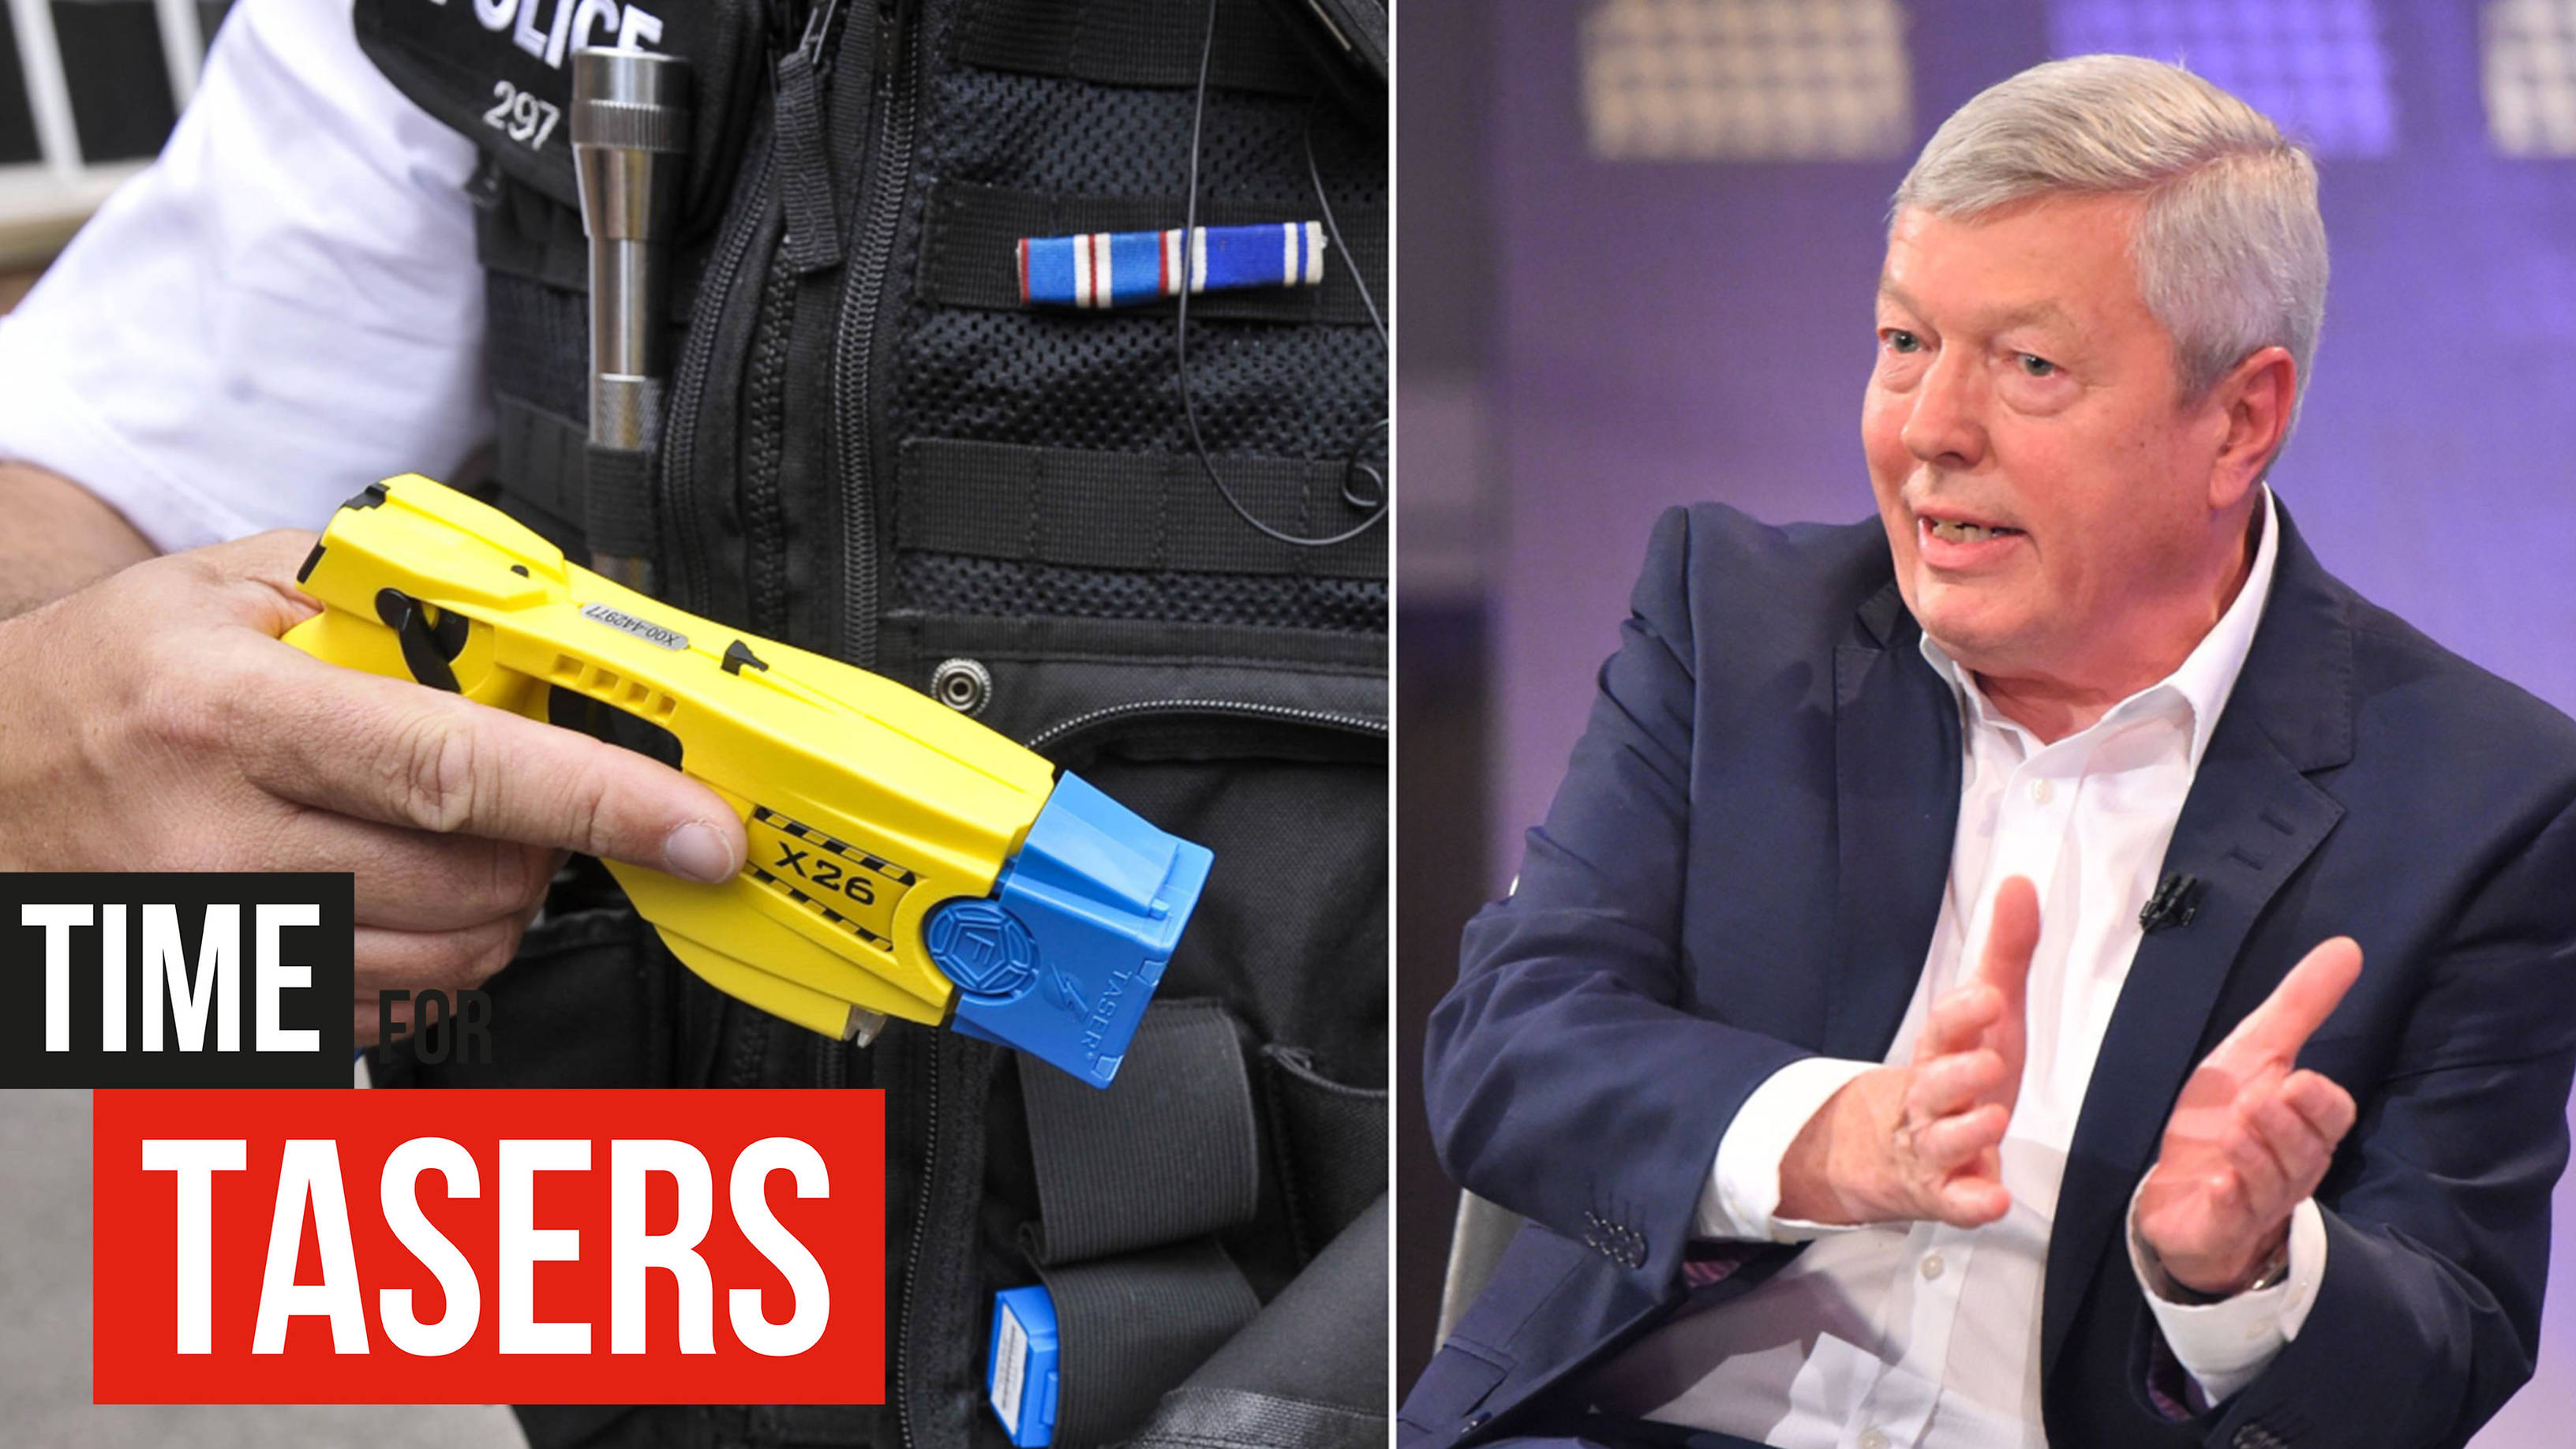 It Is Time For Tasers, Says Former Home Secretary Alan Johnson